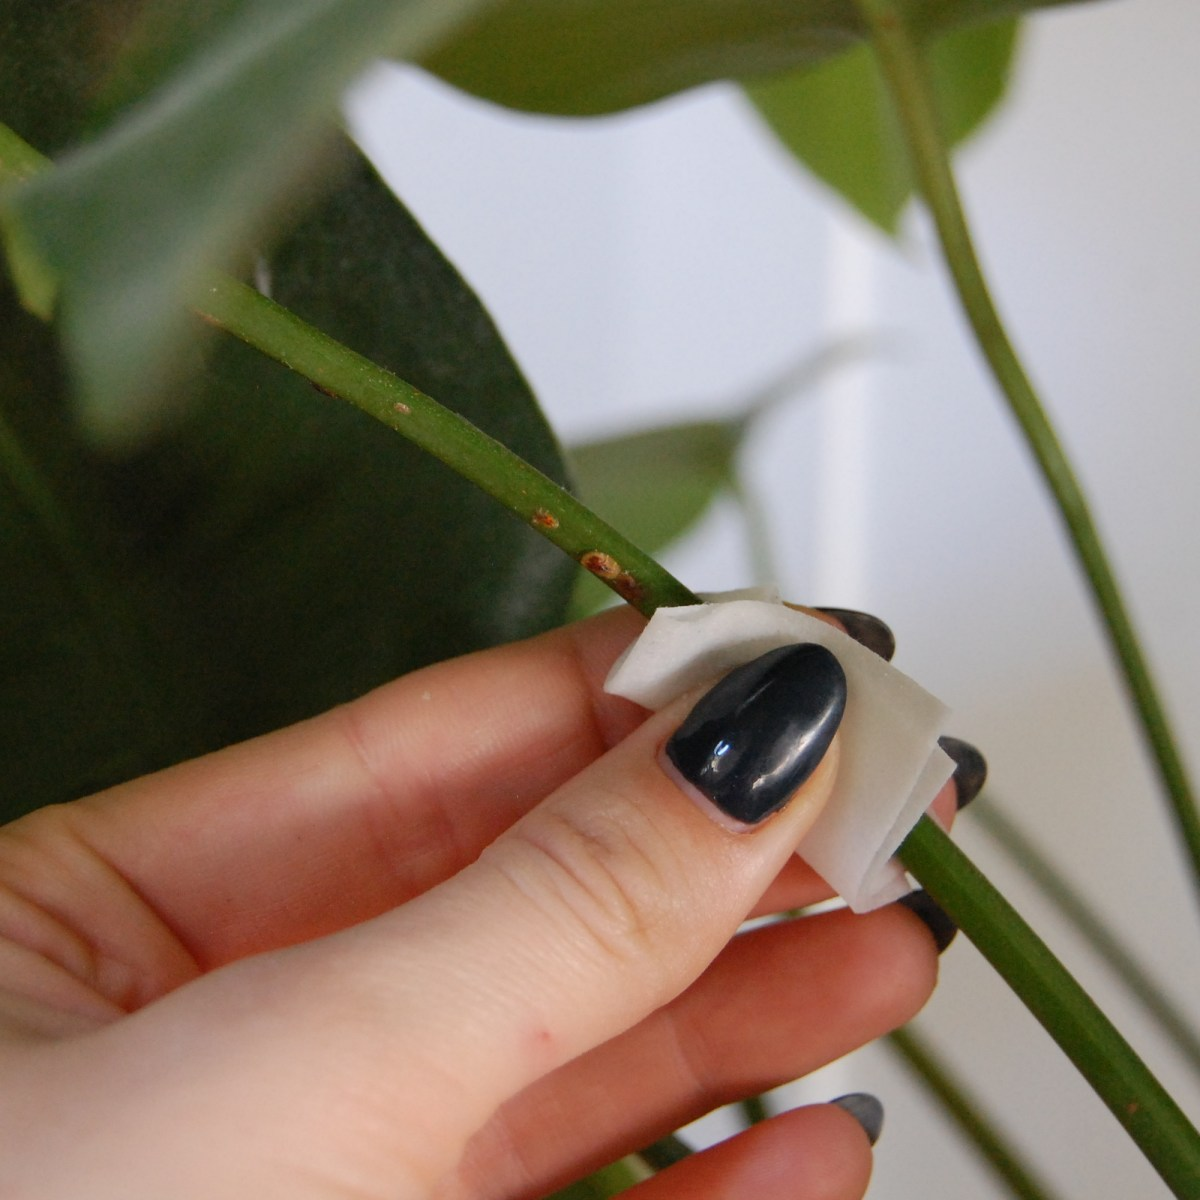 Removing scale (a common houseplant pest) from the stem of a Monstera.